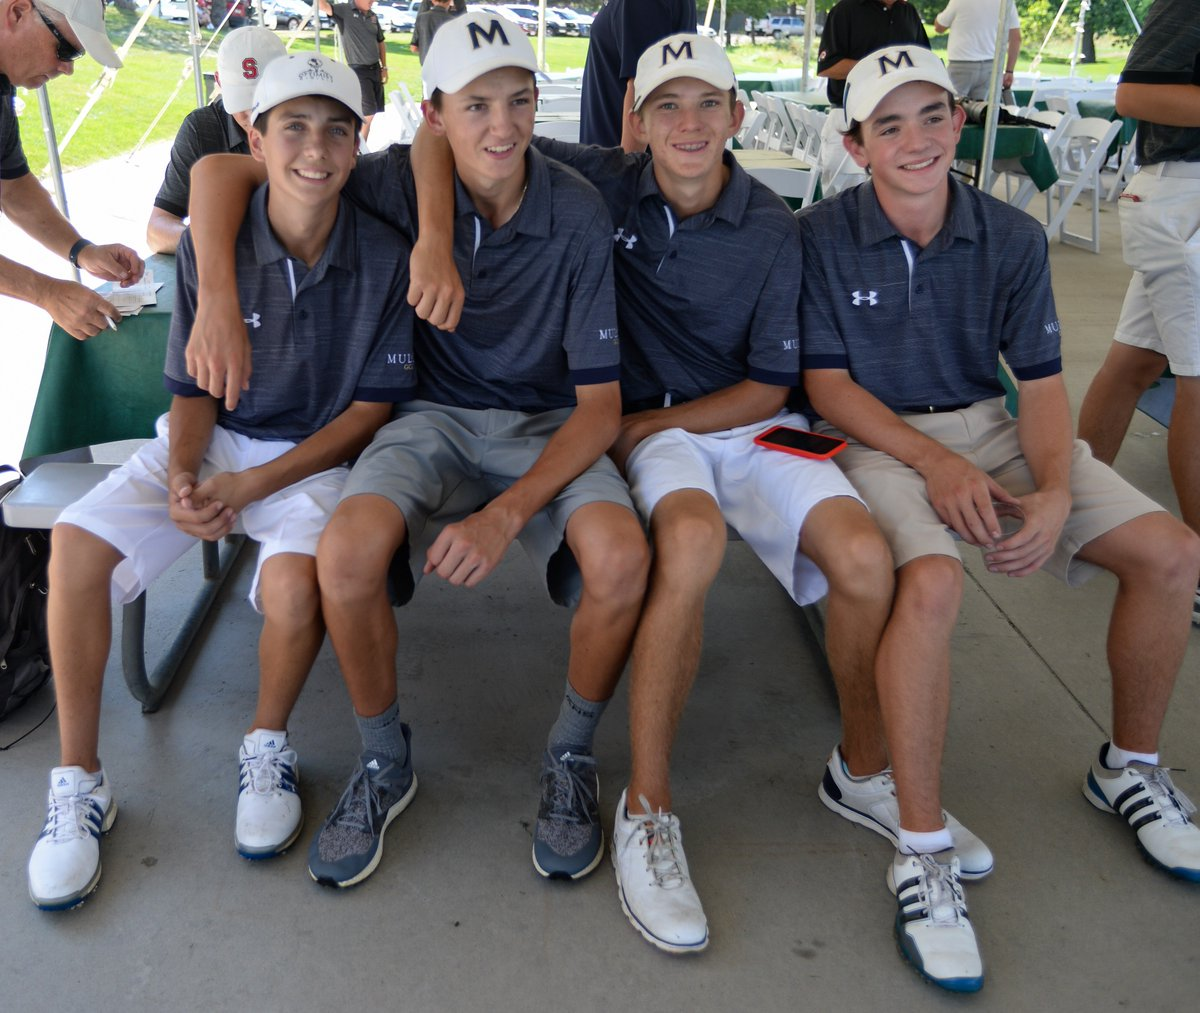 Yo: Balanced Mullen finishes second in Class 4A Region 4, will https://t.co/8ndxT1THFN send its whole team to state tourney Oct. 1-2 in Colorado Springs. Dino, Hicks, Johnson and Reister advance. #copreps #Mullenathletics @Presto89 @MullenMustang